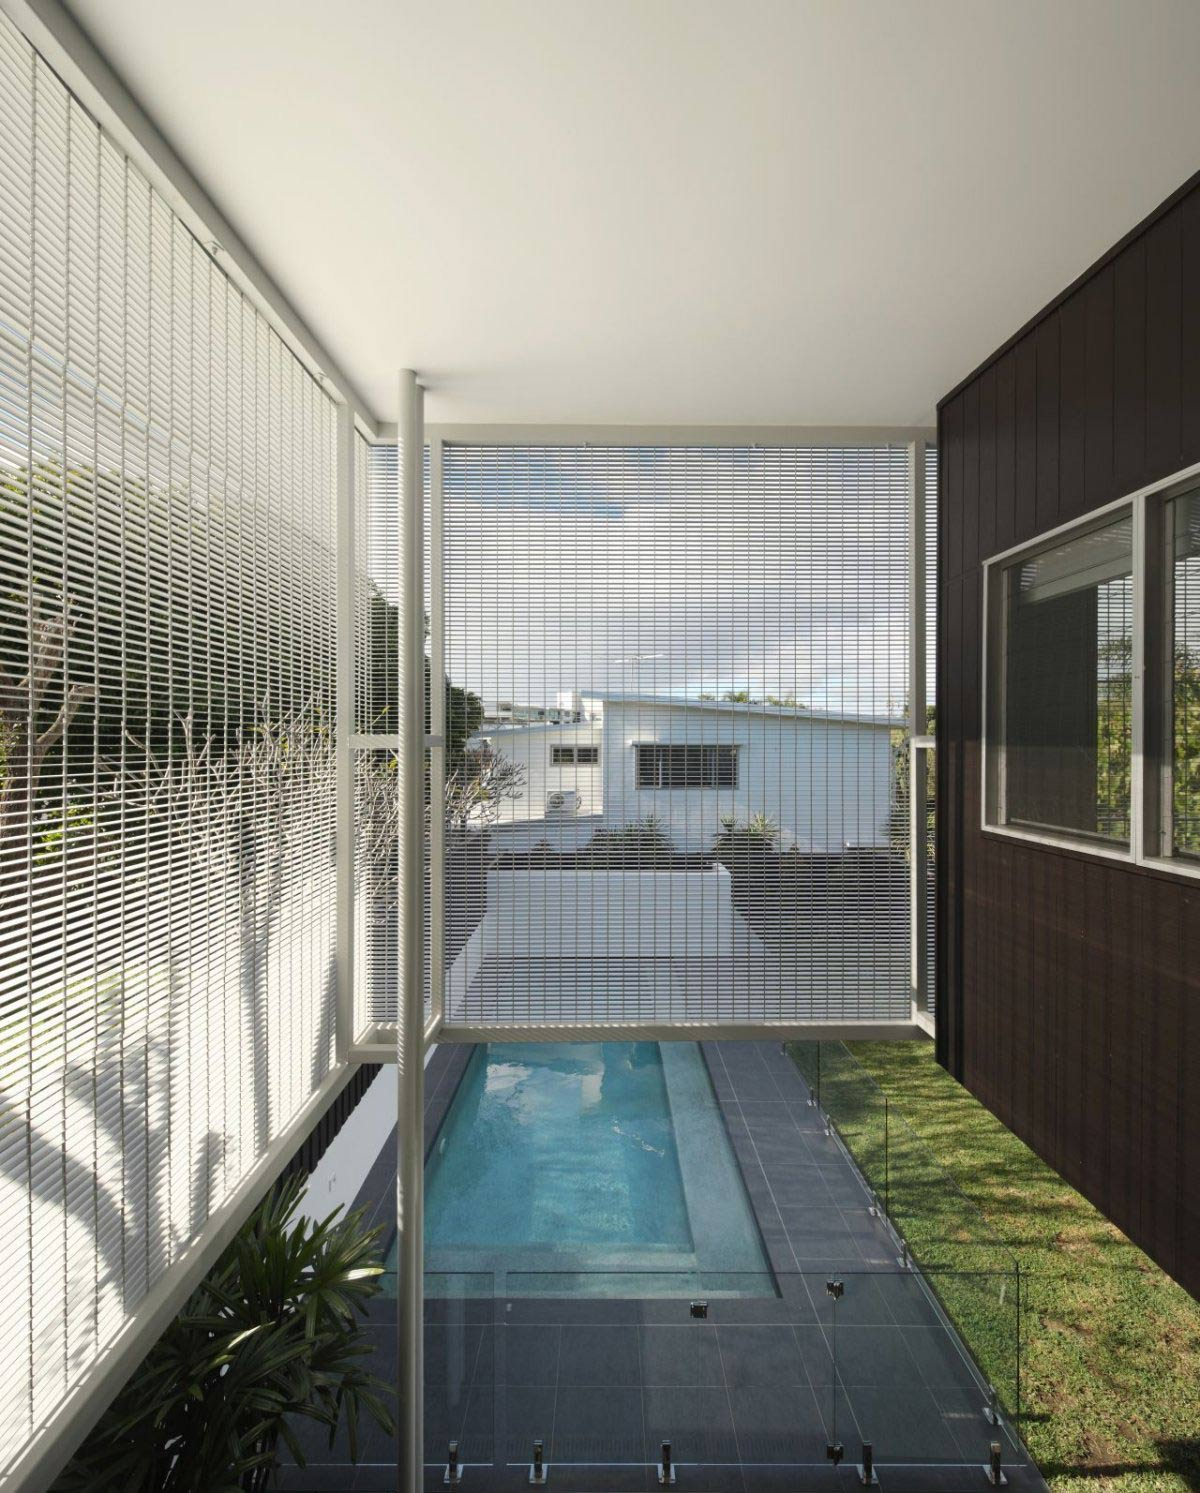 Architectural Details, Contemporary Family Home in Queensland, Australia